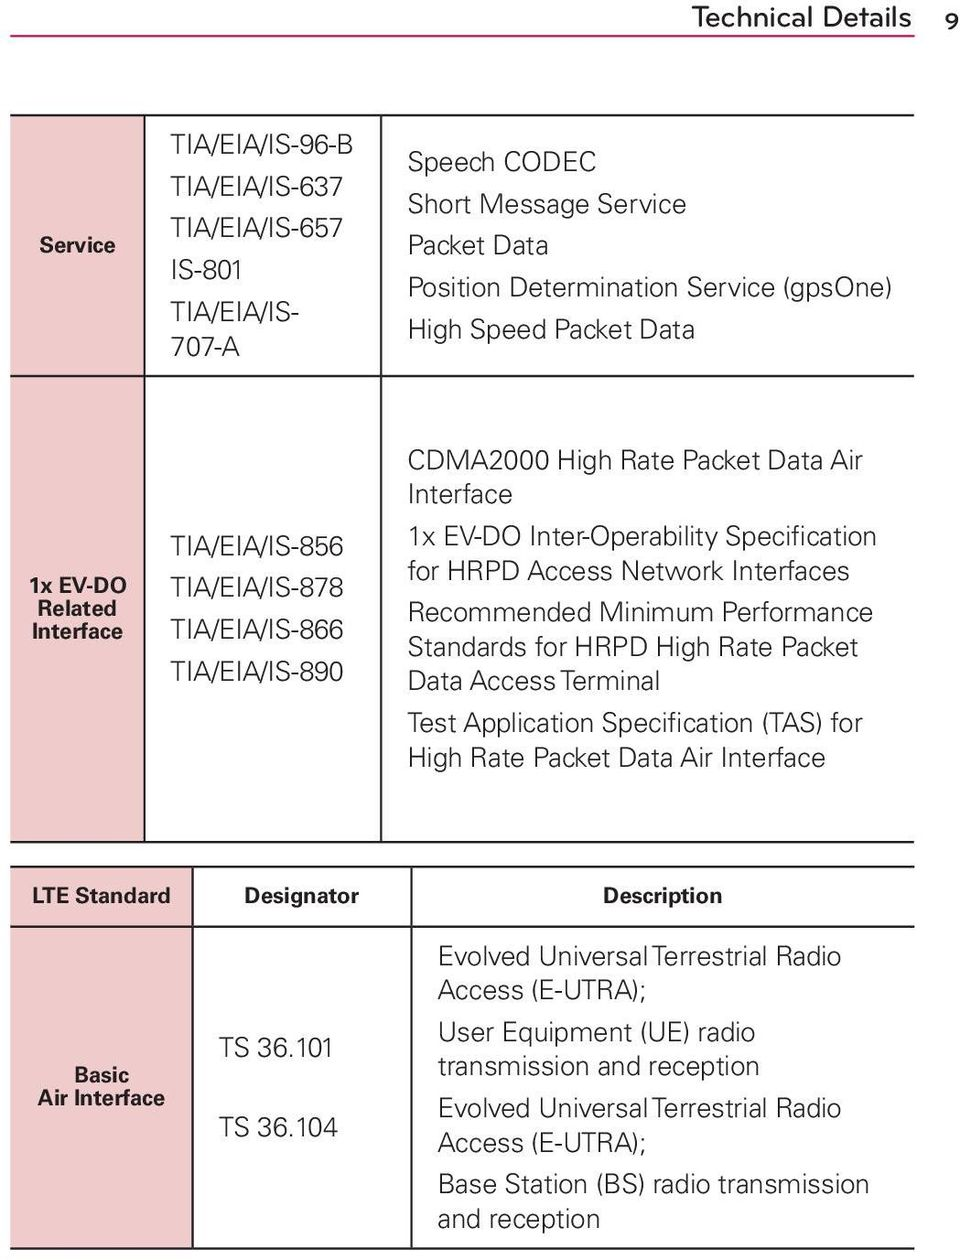 Access Network Interfaces Recommended Minimum Performance Standards for HRPD High Rate Packet Data Access Terminal Test Application Specification (TAS) for High Rate Packet Data Air Interface LTE